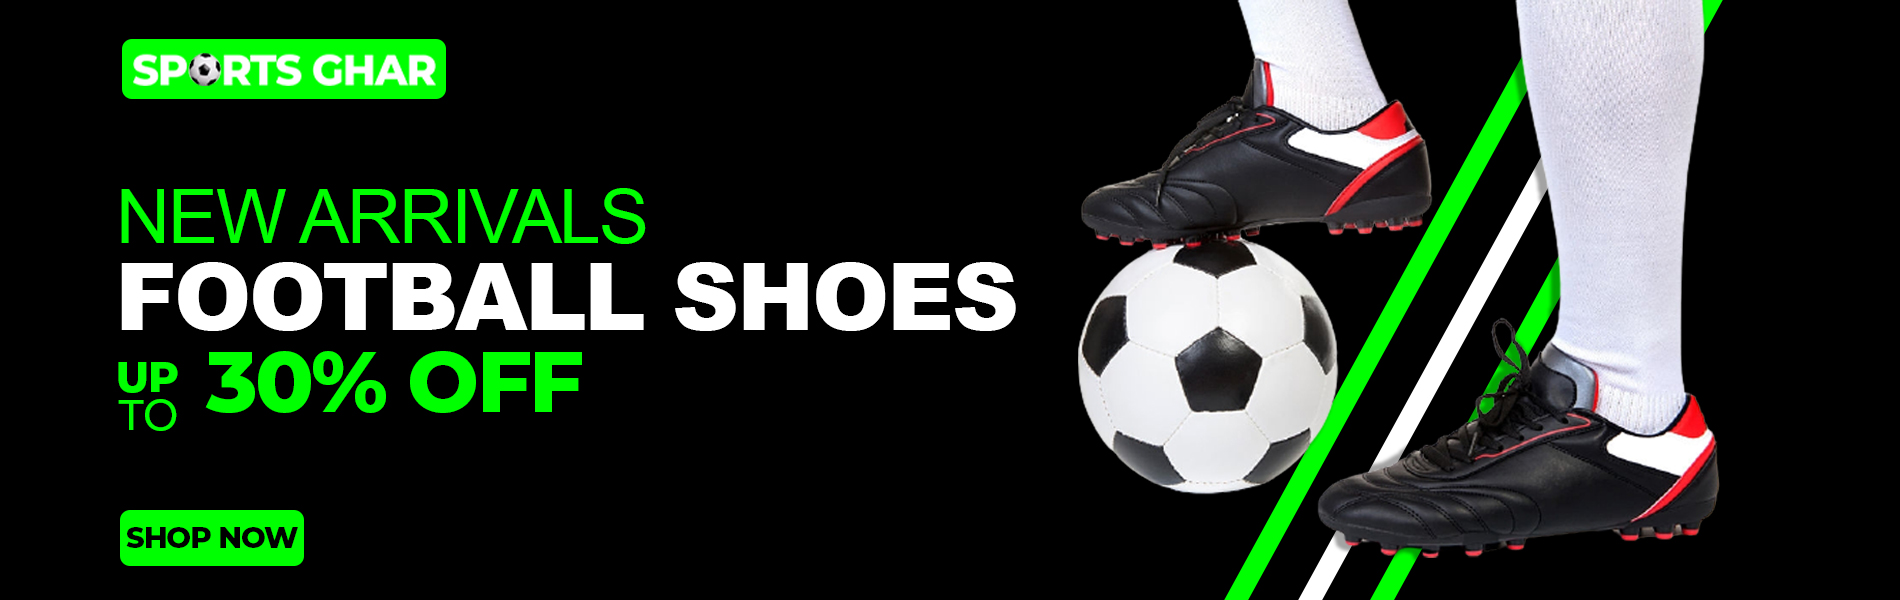 Football-Shoes-Banner-Sports-Ghar